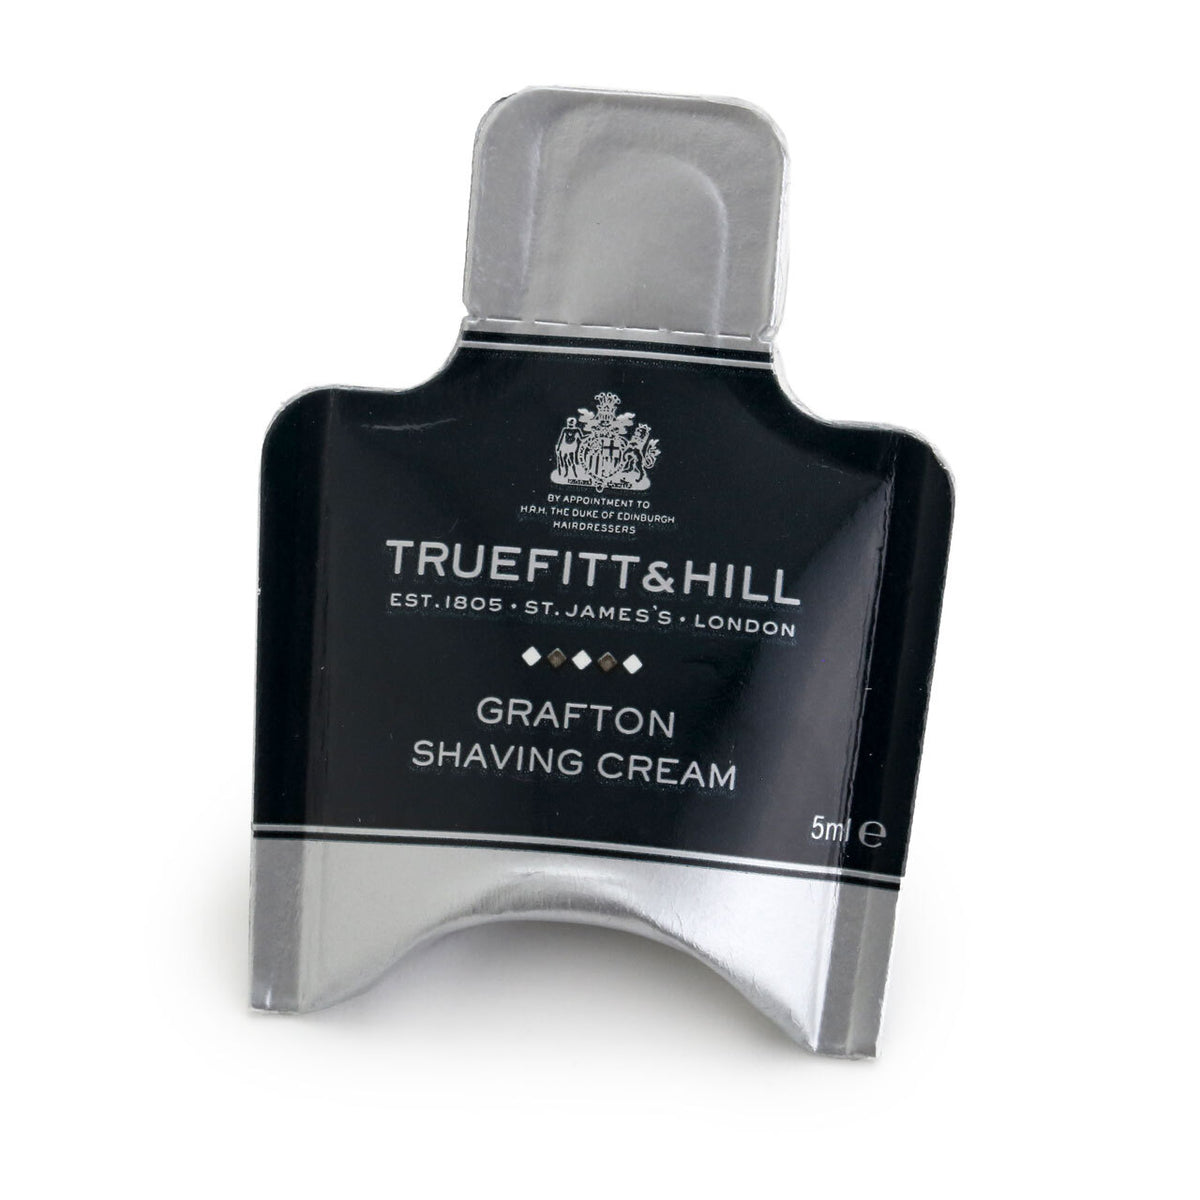 Truefitt & Hill Shaving Cream Samples